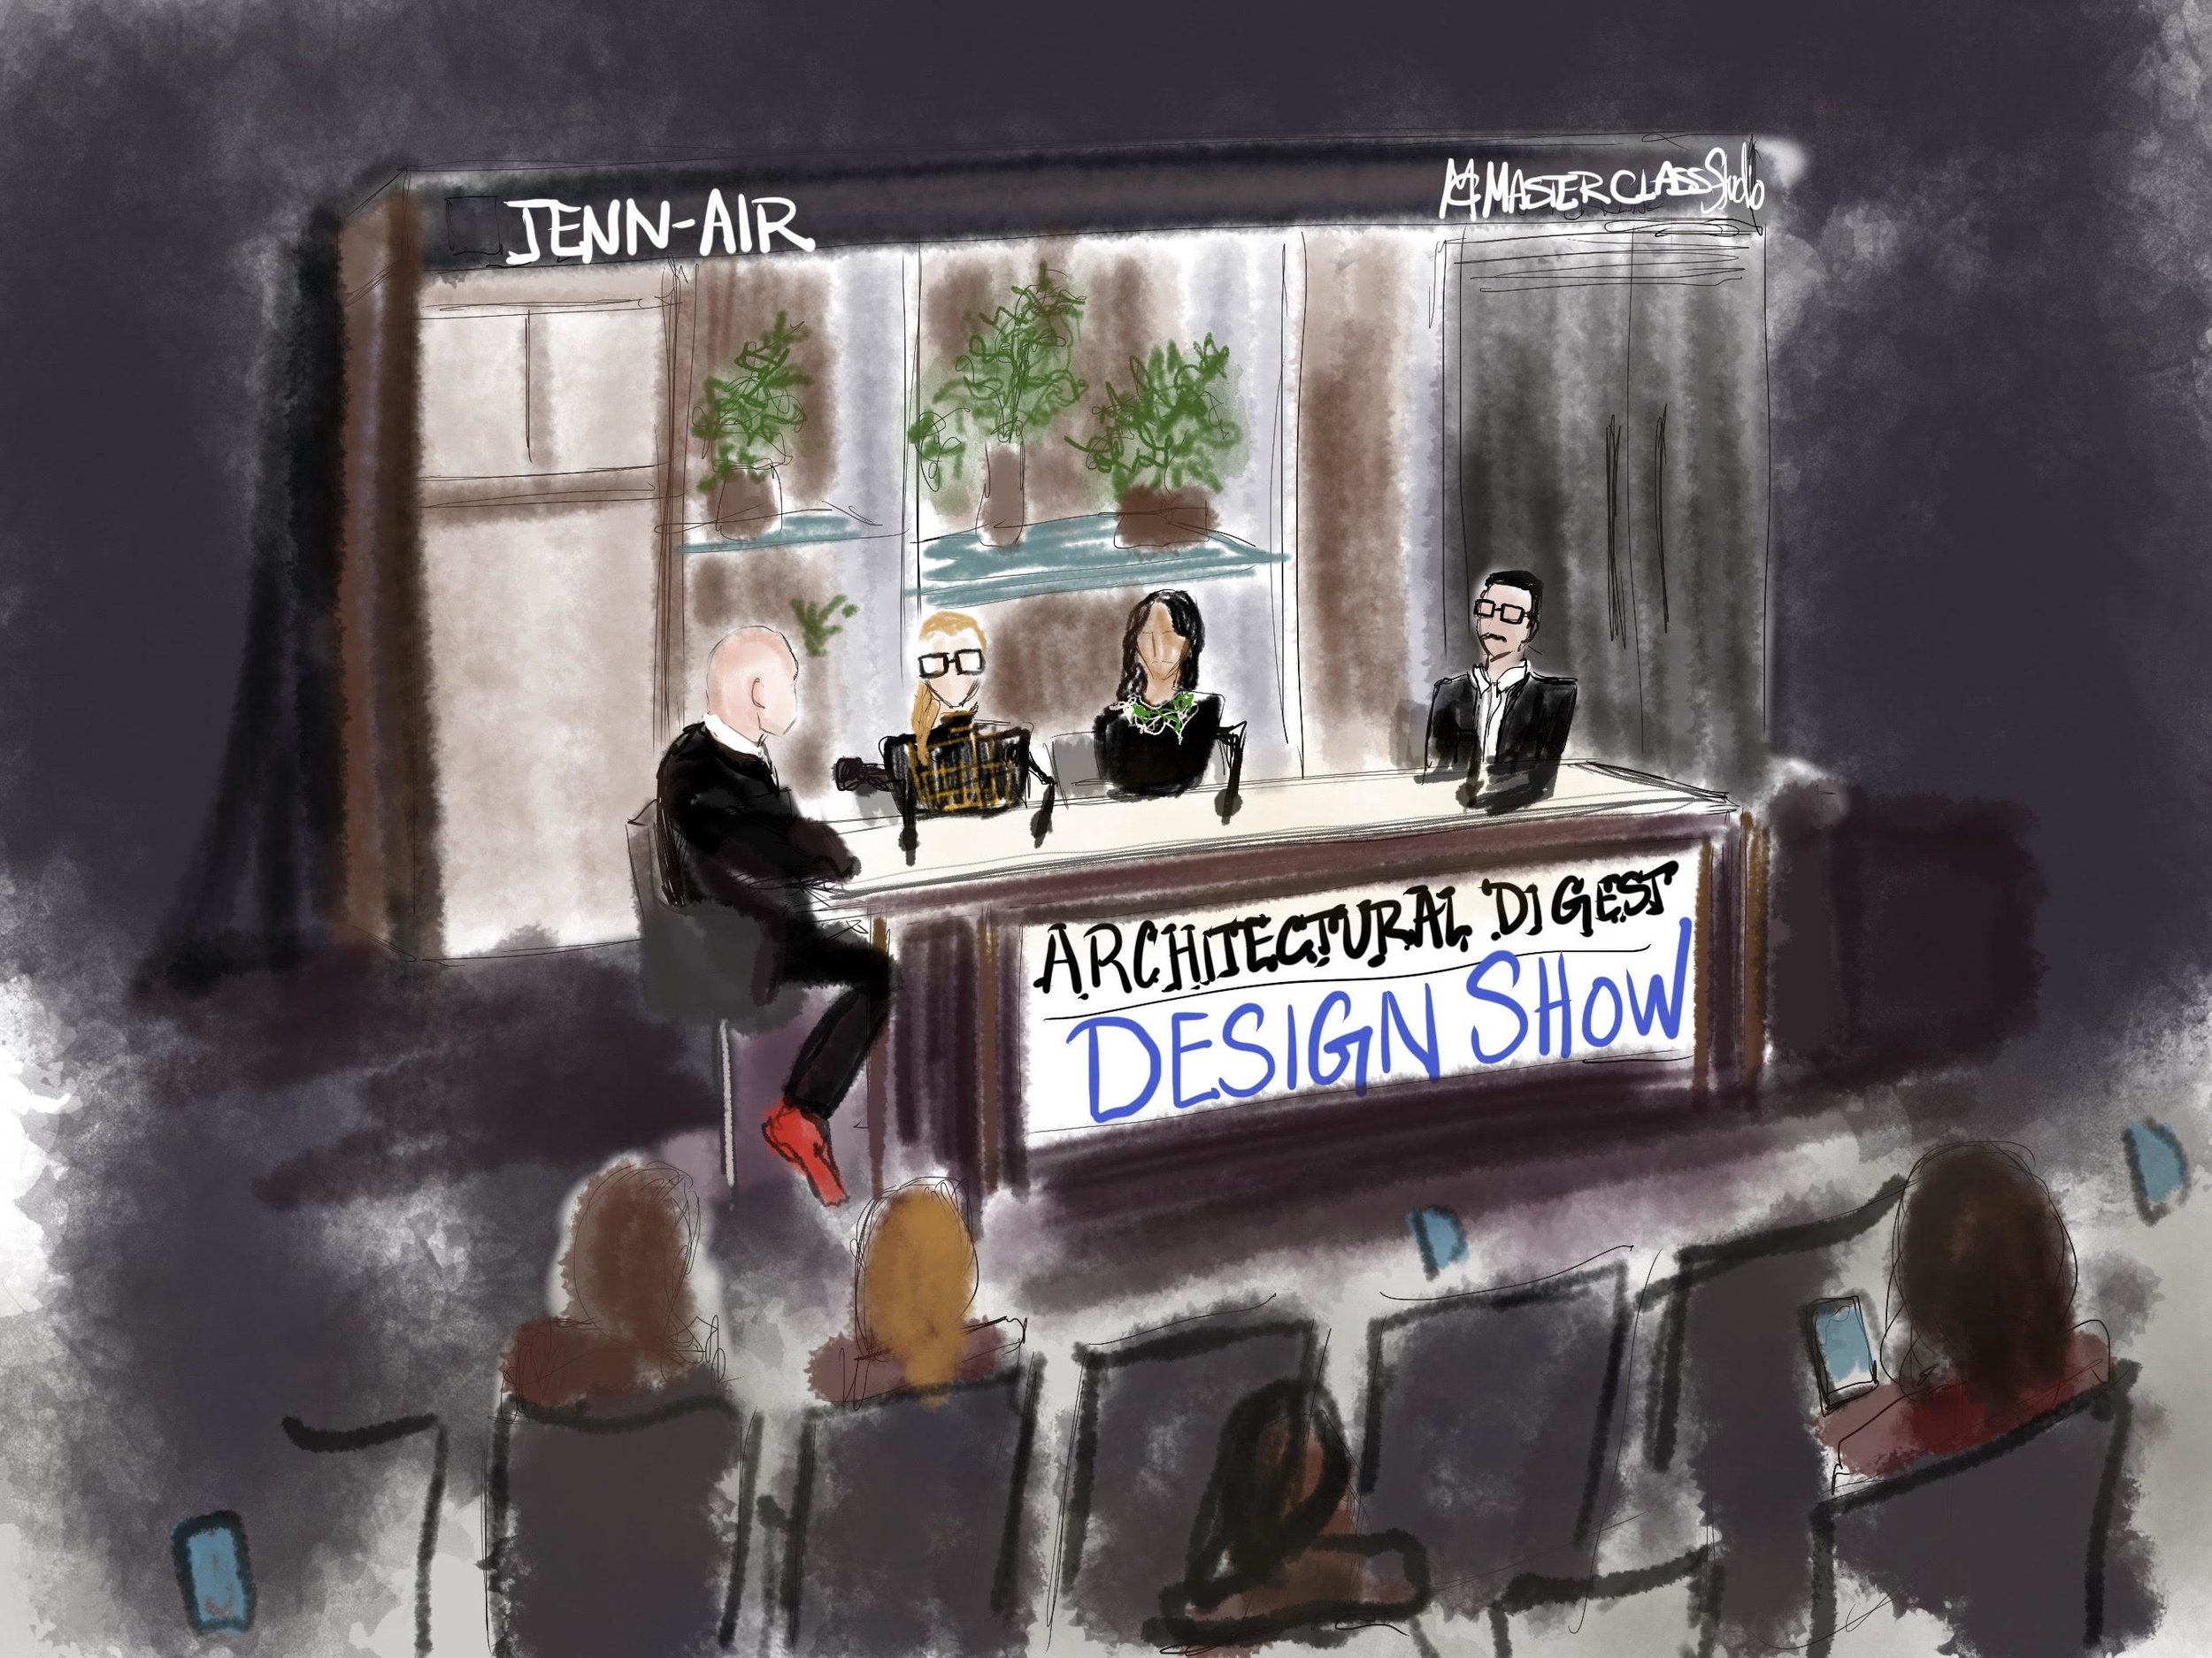 Lydia Marie Elizabeth Whos Afraid of the Contemporary Art Market Architectural Digest Design Show Panel Illustration at Jenn Air.jpg